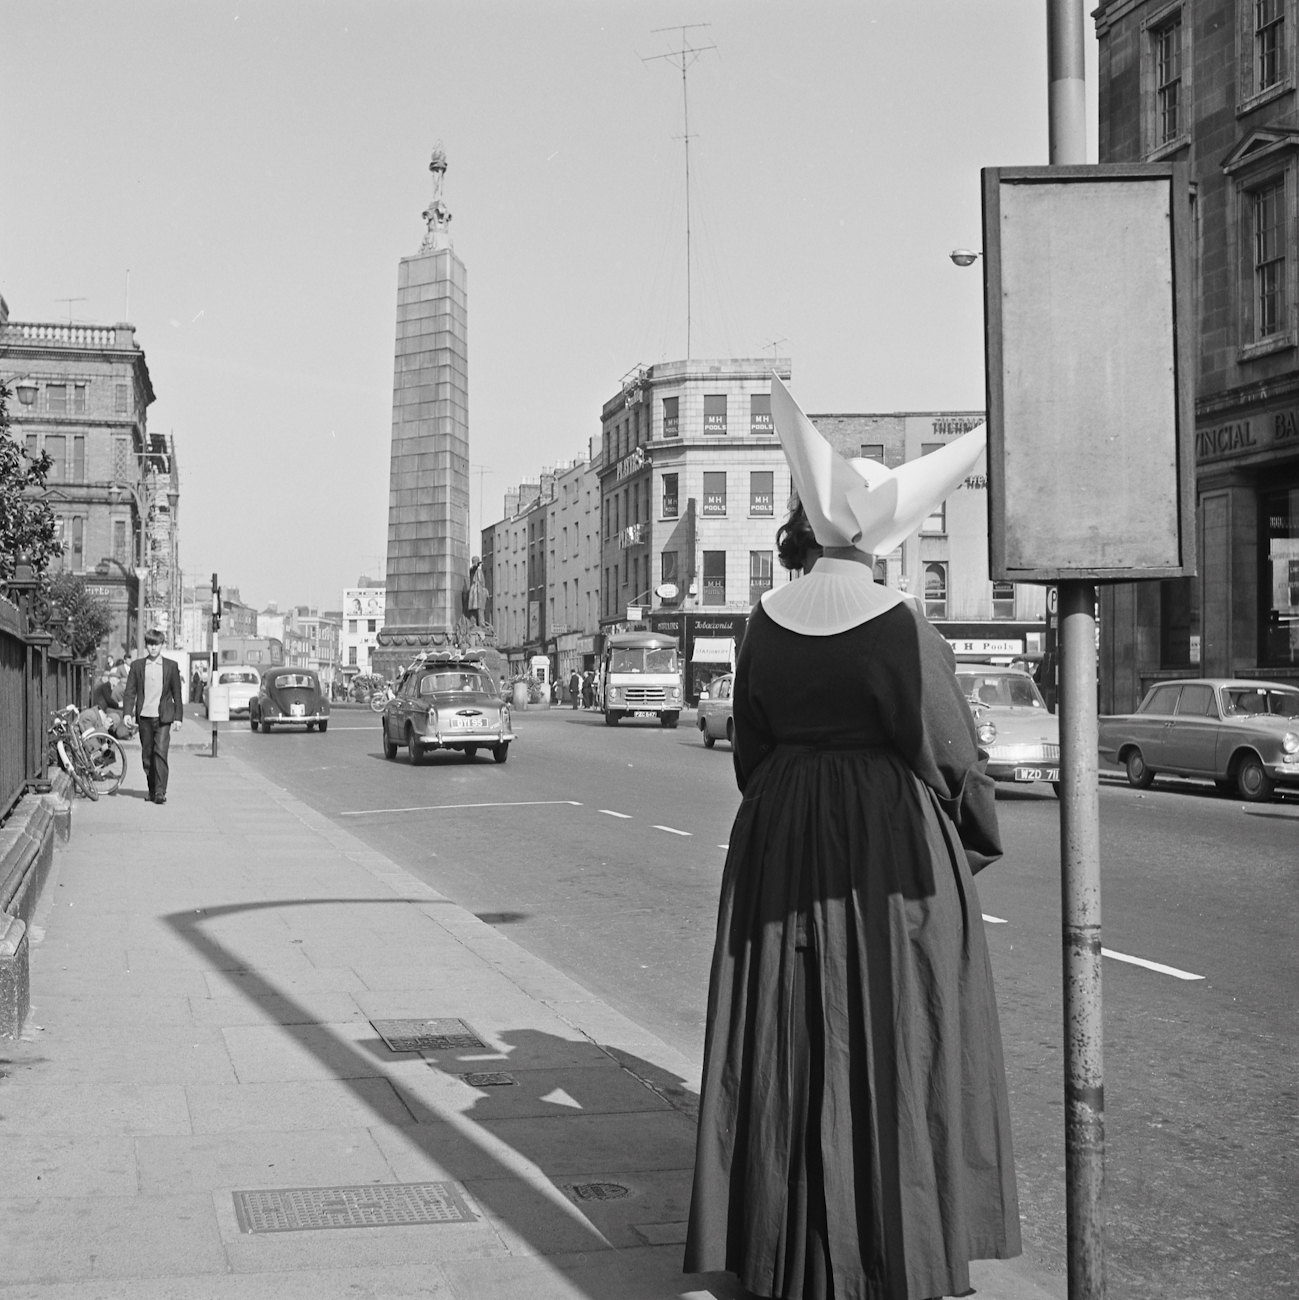 Ireland 1960s, A nun with a most remarkable (and slightly dangerous-looking) veil/head dress waiting for a bus outside the Rotunda Hospital on Parnell Street, Dublin. Cannot work out whether a clump of her own hair (unlikely) has come loose, or whether she is masking a person in front of her... With help from people over on our NLI Facebook page, it turns out this nun was a member of the Daughters of Charity (of St. Vincent de Paul). The distinctive head dress is called a cornette, and led to this order being known as the Butterfly Nuns. The Daughters of Charity abandoned the cornette on 20 September 1964, so unless this nun was ultra-traditional and carried on wearing it regardless, then this photo must have been taken before 20 September. This shot also allows us to view the Parnell Monument at the end of O'Connell Street from yet another angle. Photographer: Elinor Wiltshire Date: 1964